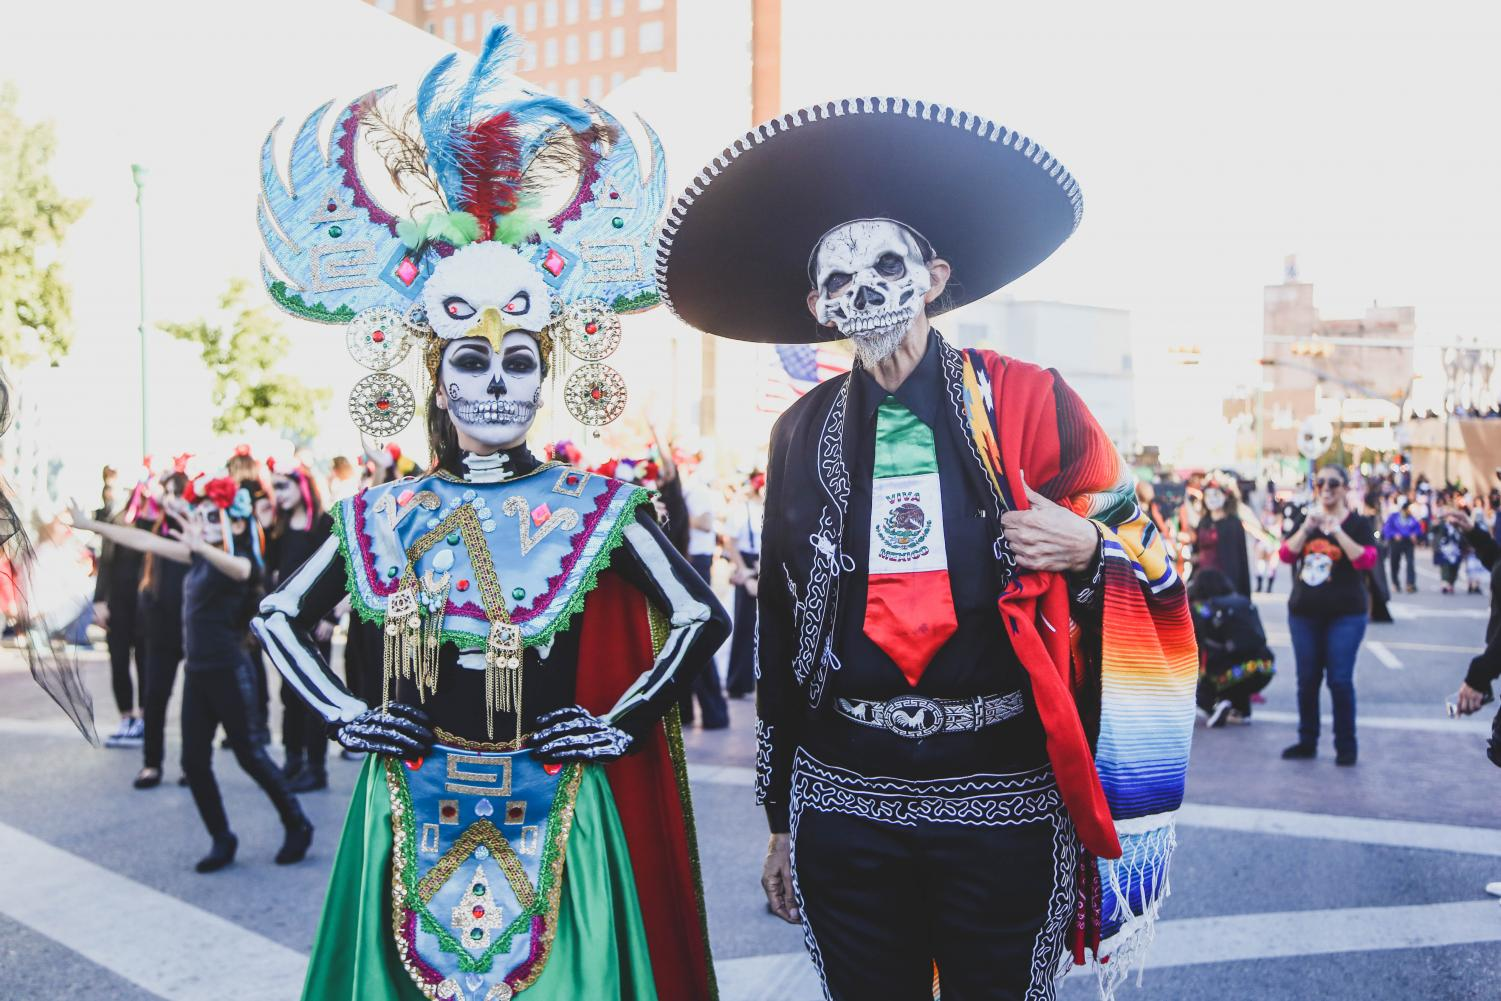 Attendees+dress+in+traditional+Mexican+clothing+and+paint+their+face+as+catrinas+to+celebrate+the+Day+of+the+Dead+on+Saturday%2C+Nov.+3+at+Down+Town+El+Paso.+